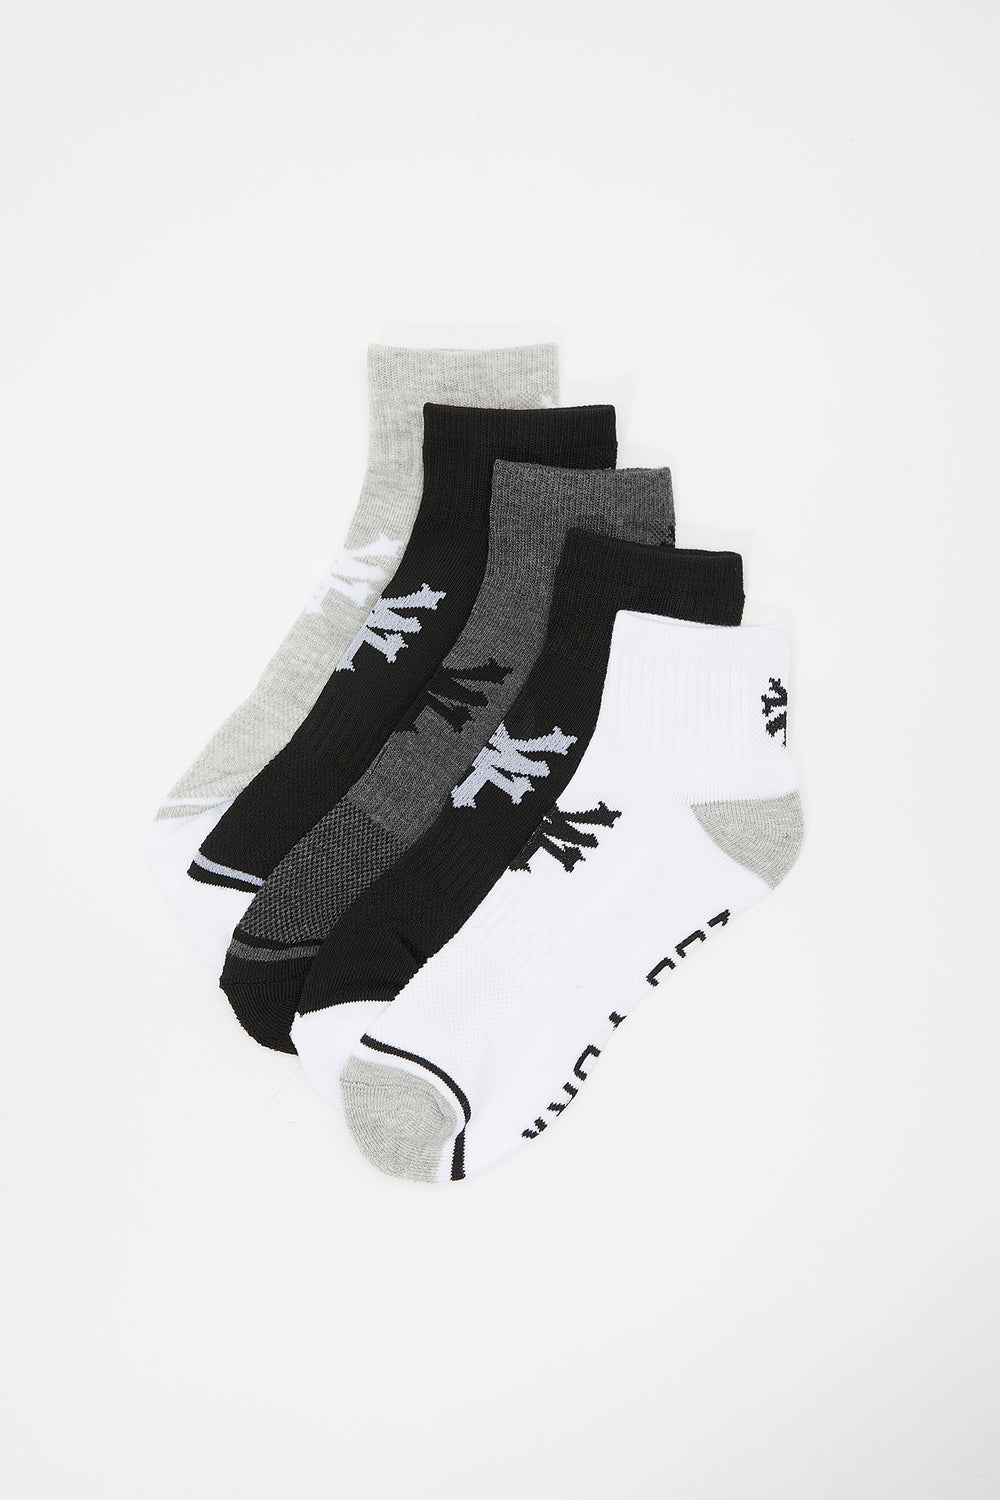 Zoo York Youth Ankle Socks 5-Pack Black with White